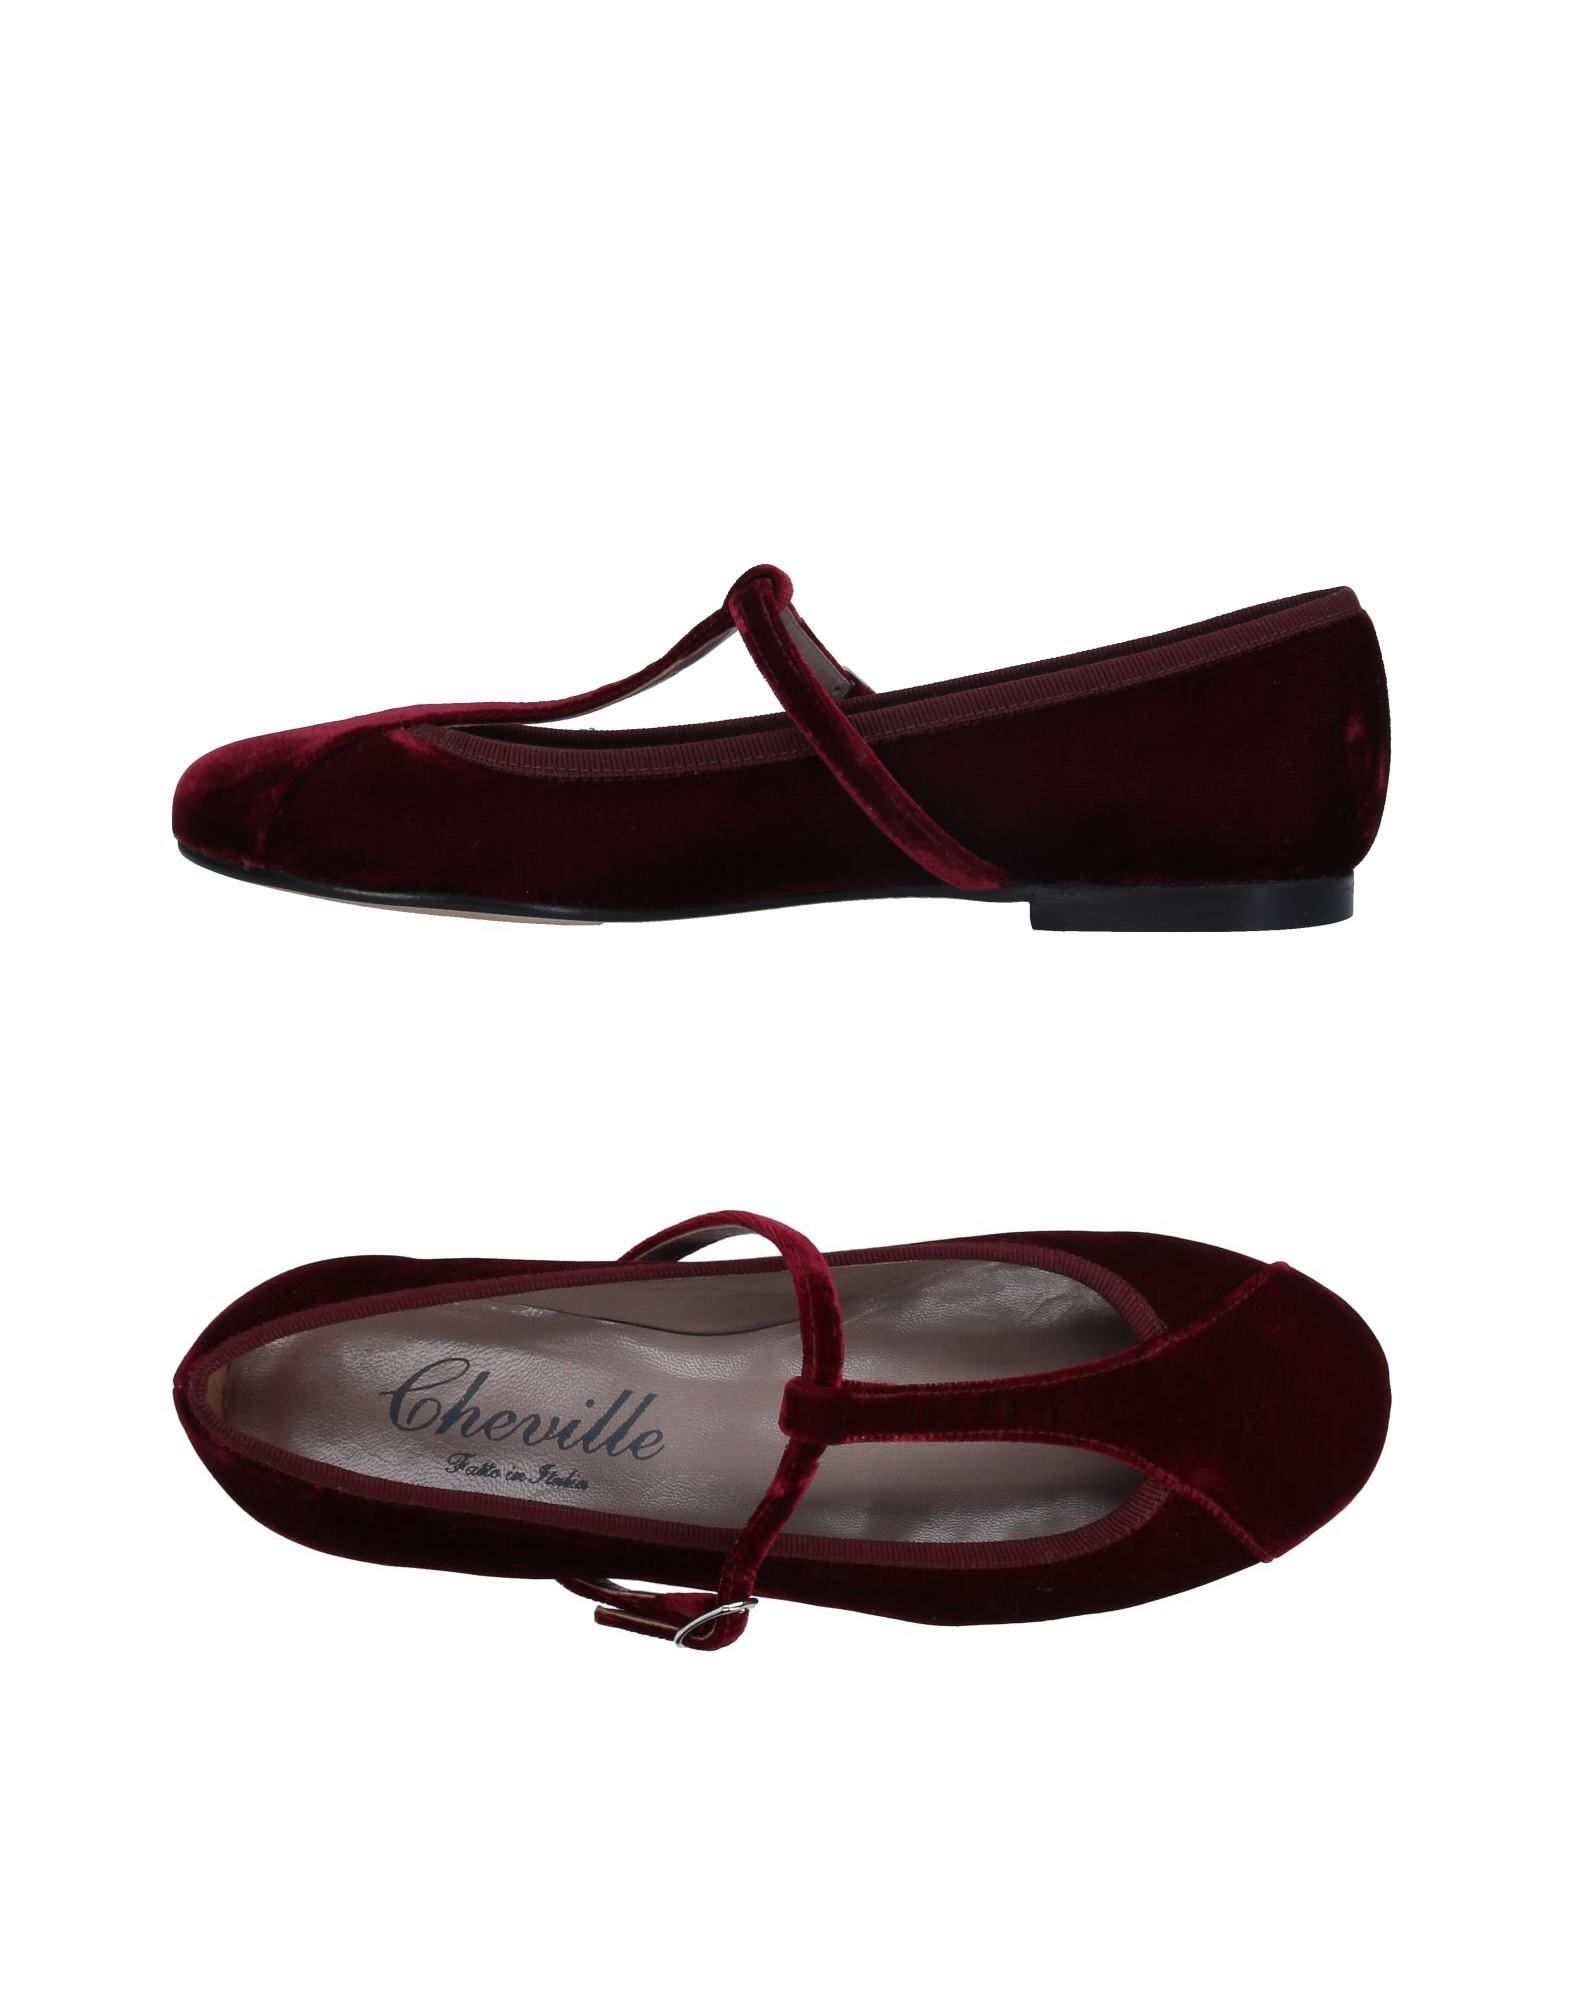 CHEVILLE Ballet Flats in Maroon